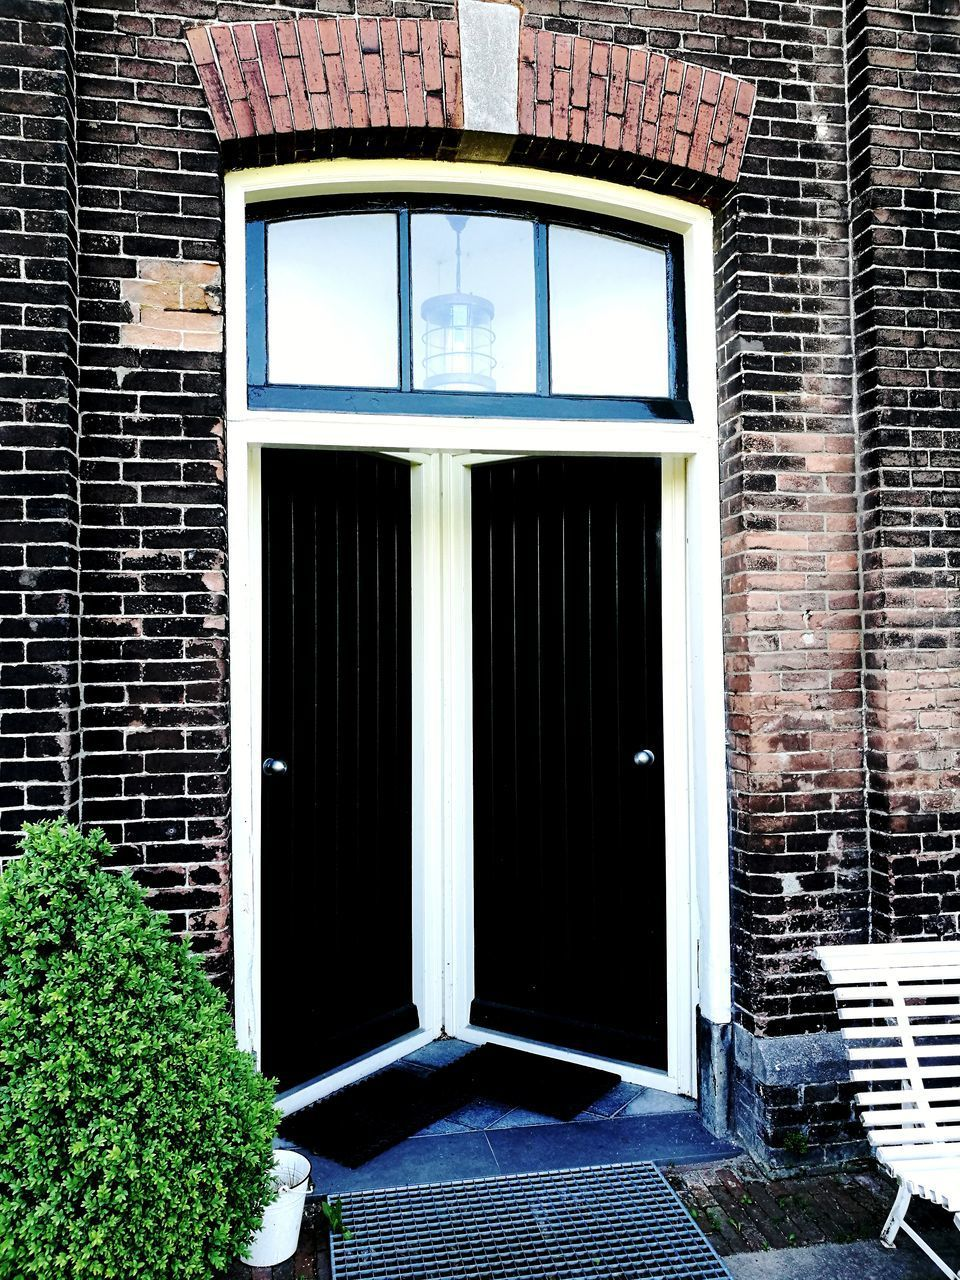 architecture, built structure, building exterior, door, window, outdoors, brick wall, no people, day